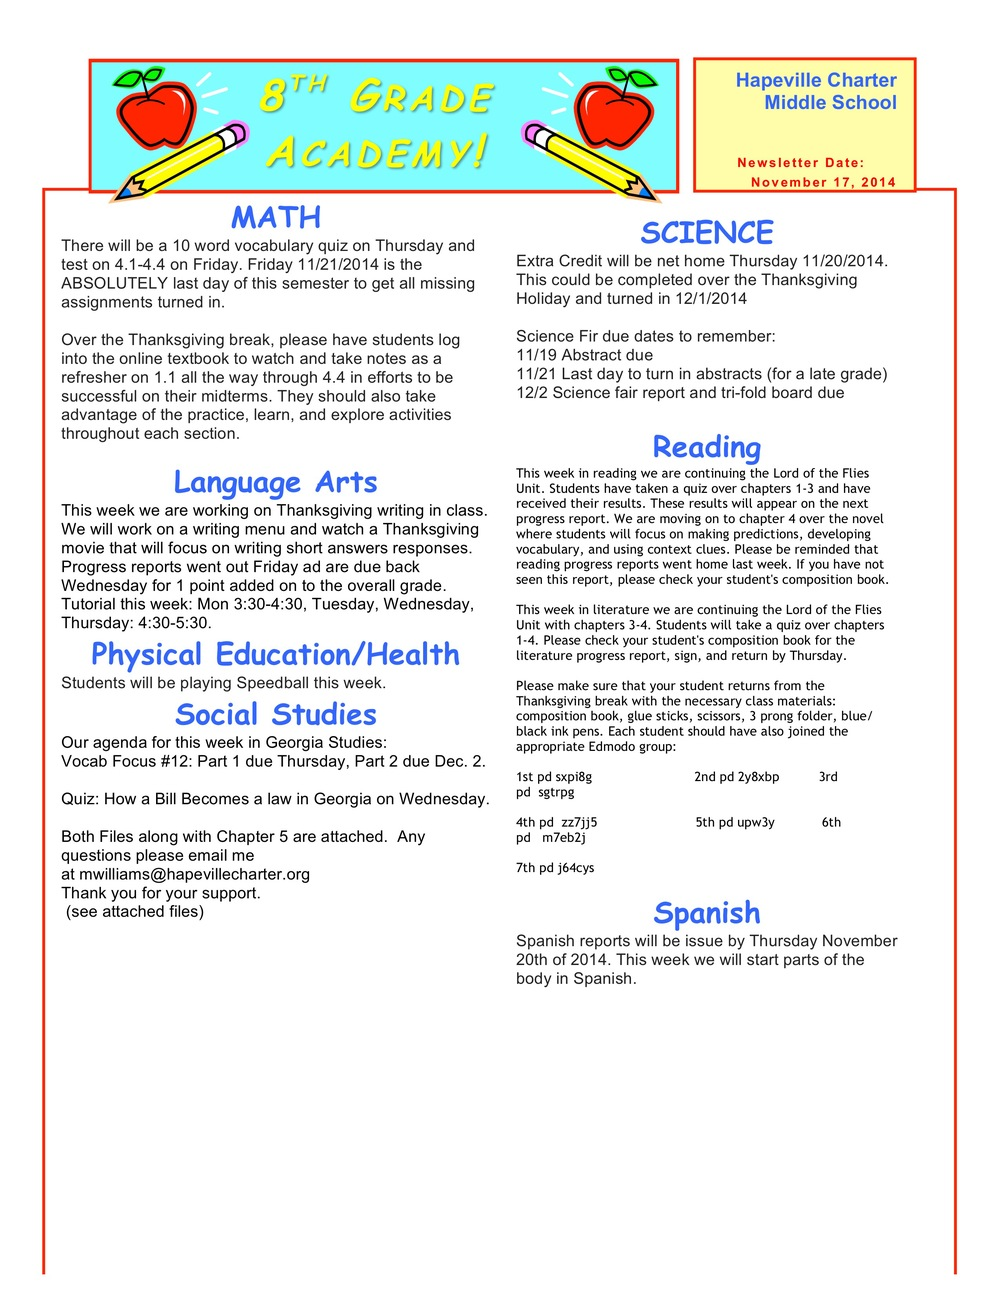 Newsletter Image8th grade November 17.jpeg